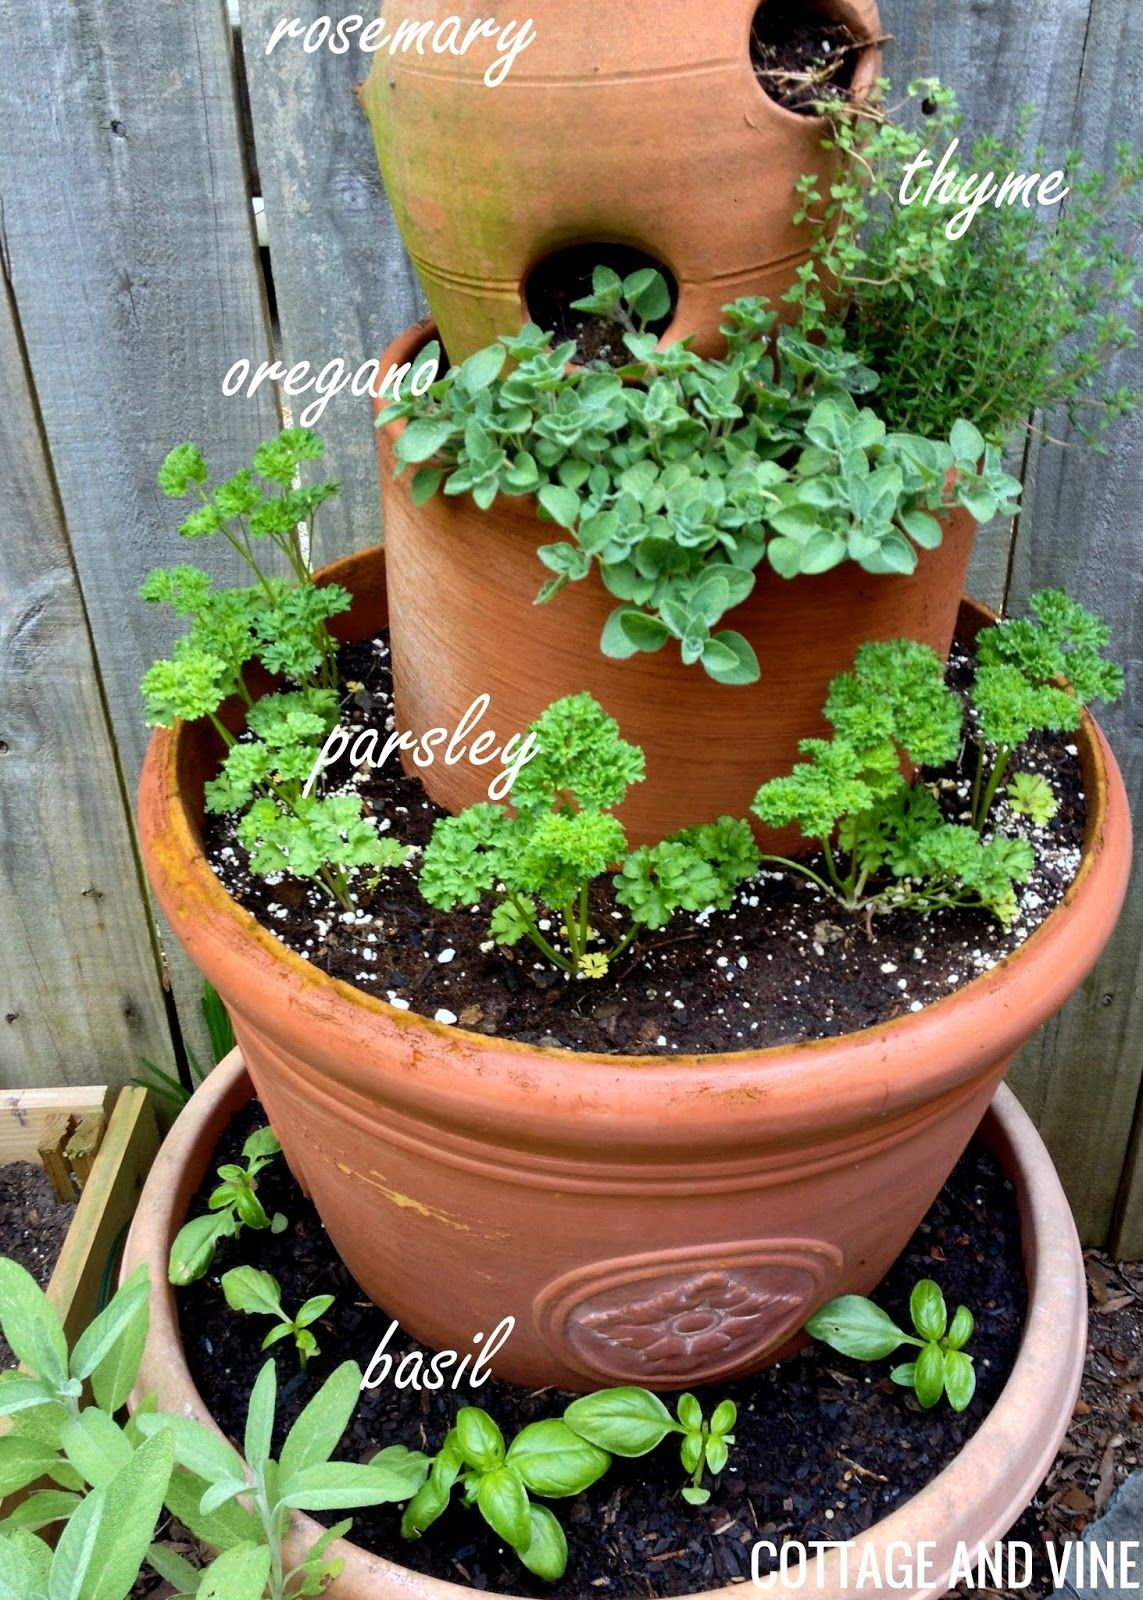 COTTAGE AND VINE: An Herb Tower Update